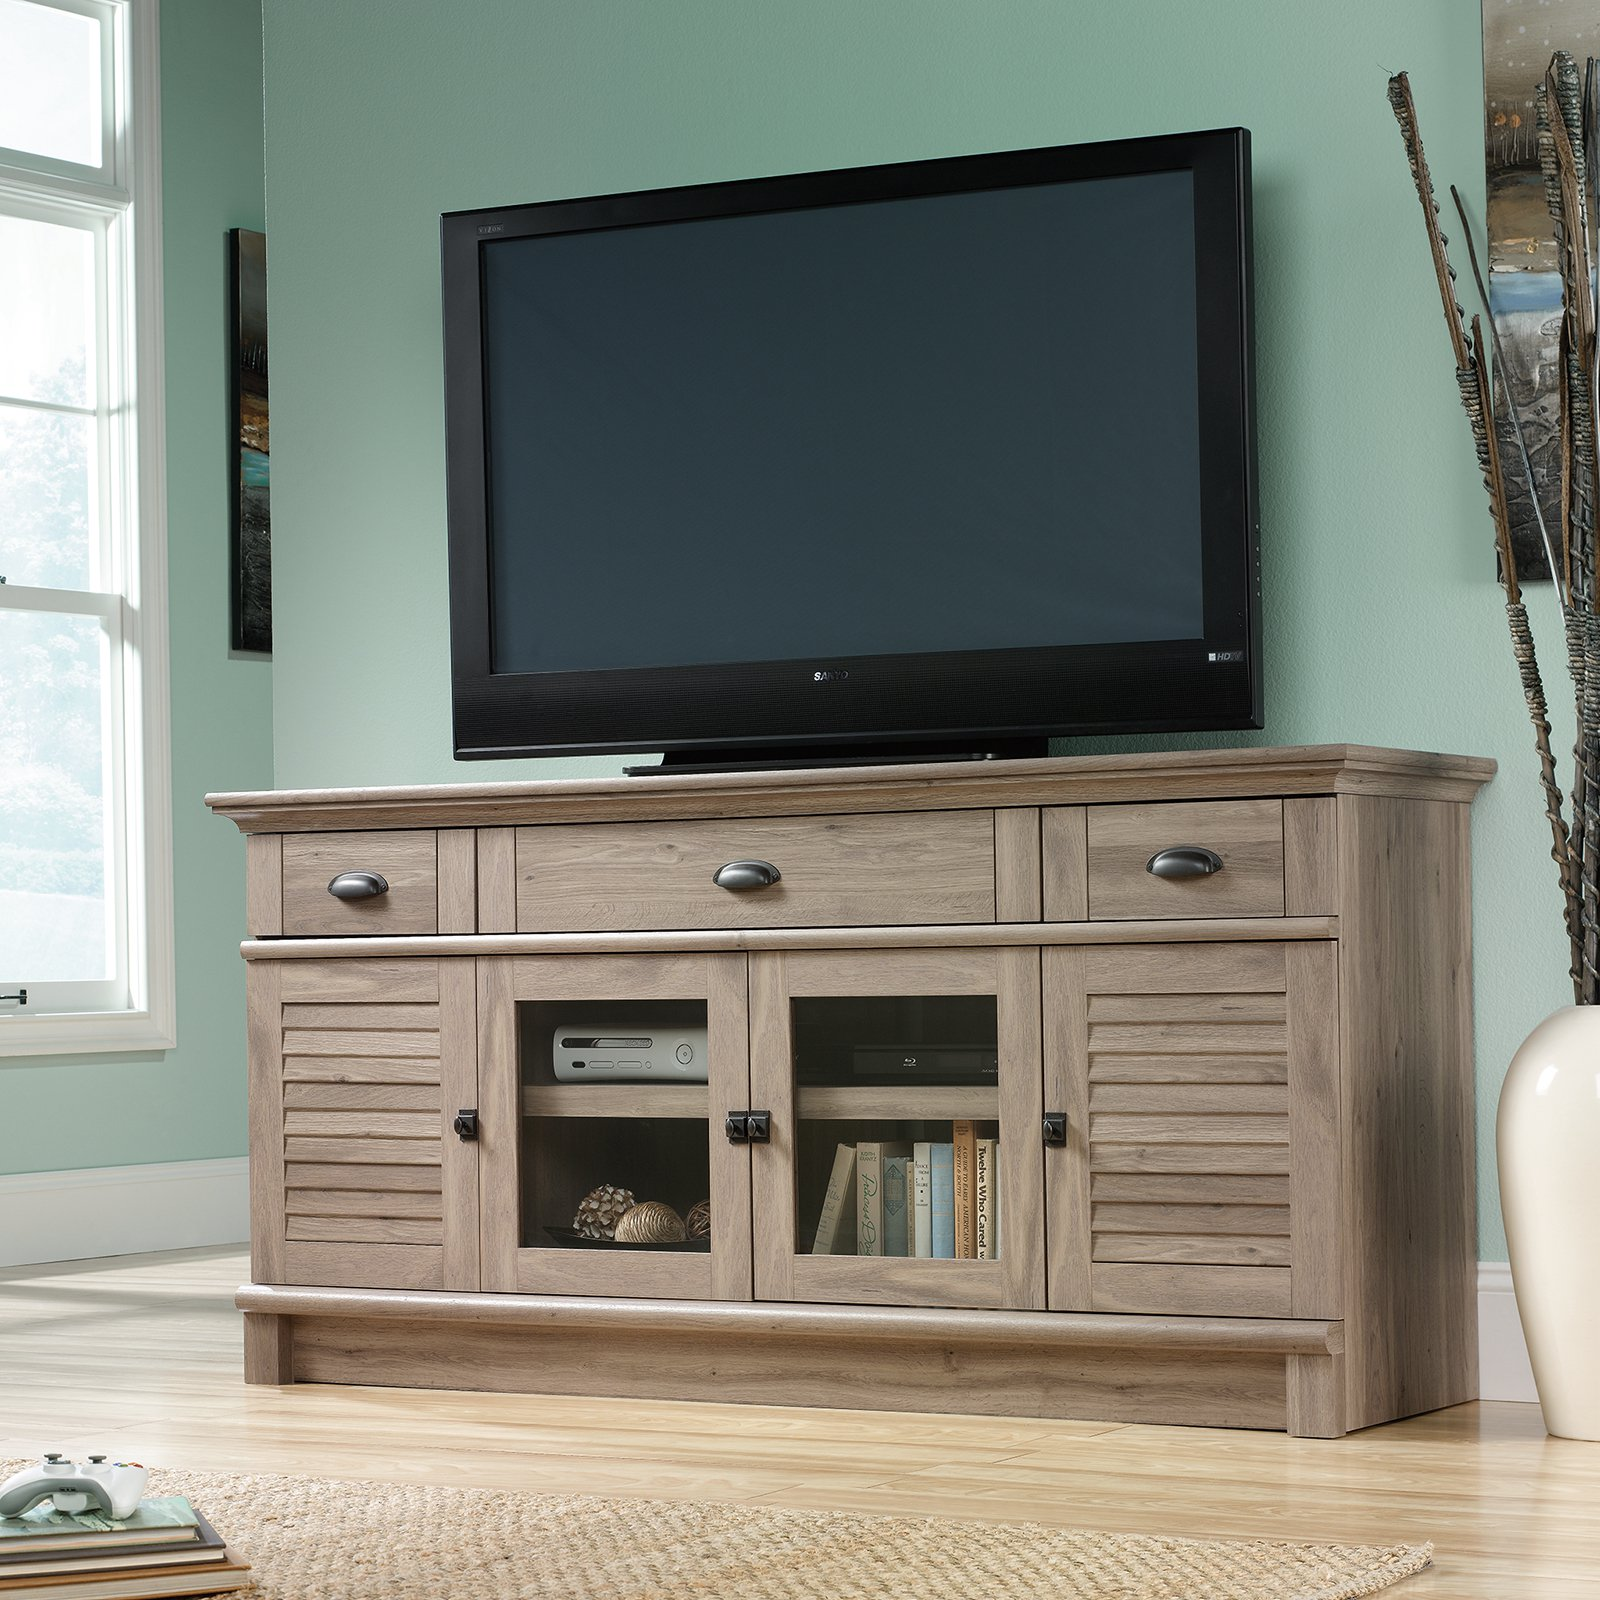 Walmart Sauder Entertainment Center | Sauder Beginnings Tv Stand Cinnamon Cherry | Sauder Tv Stands